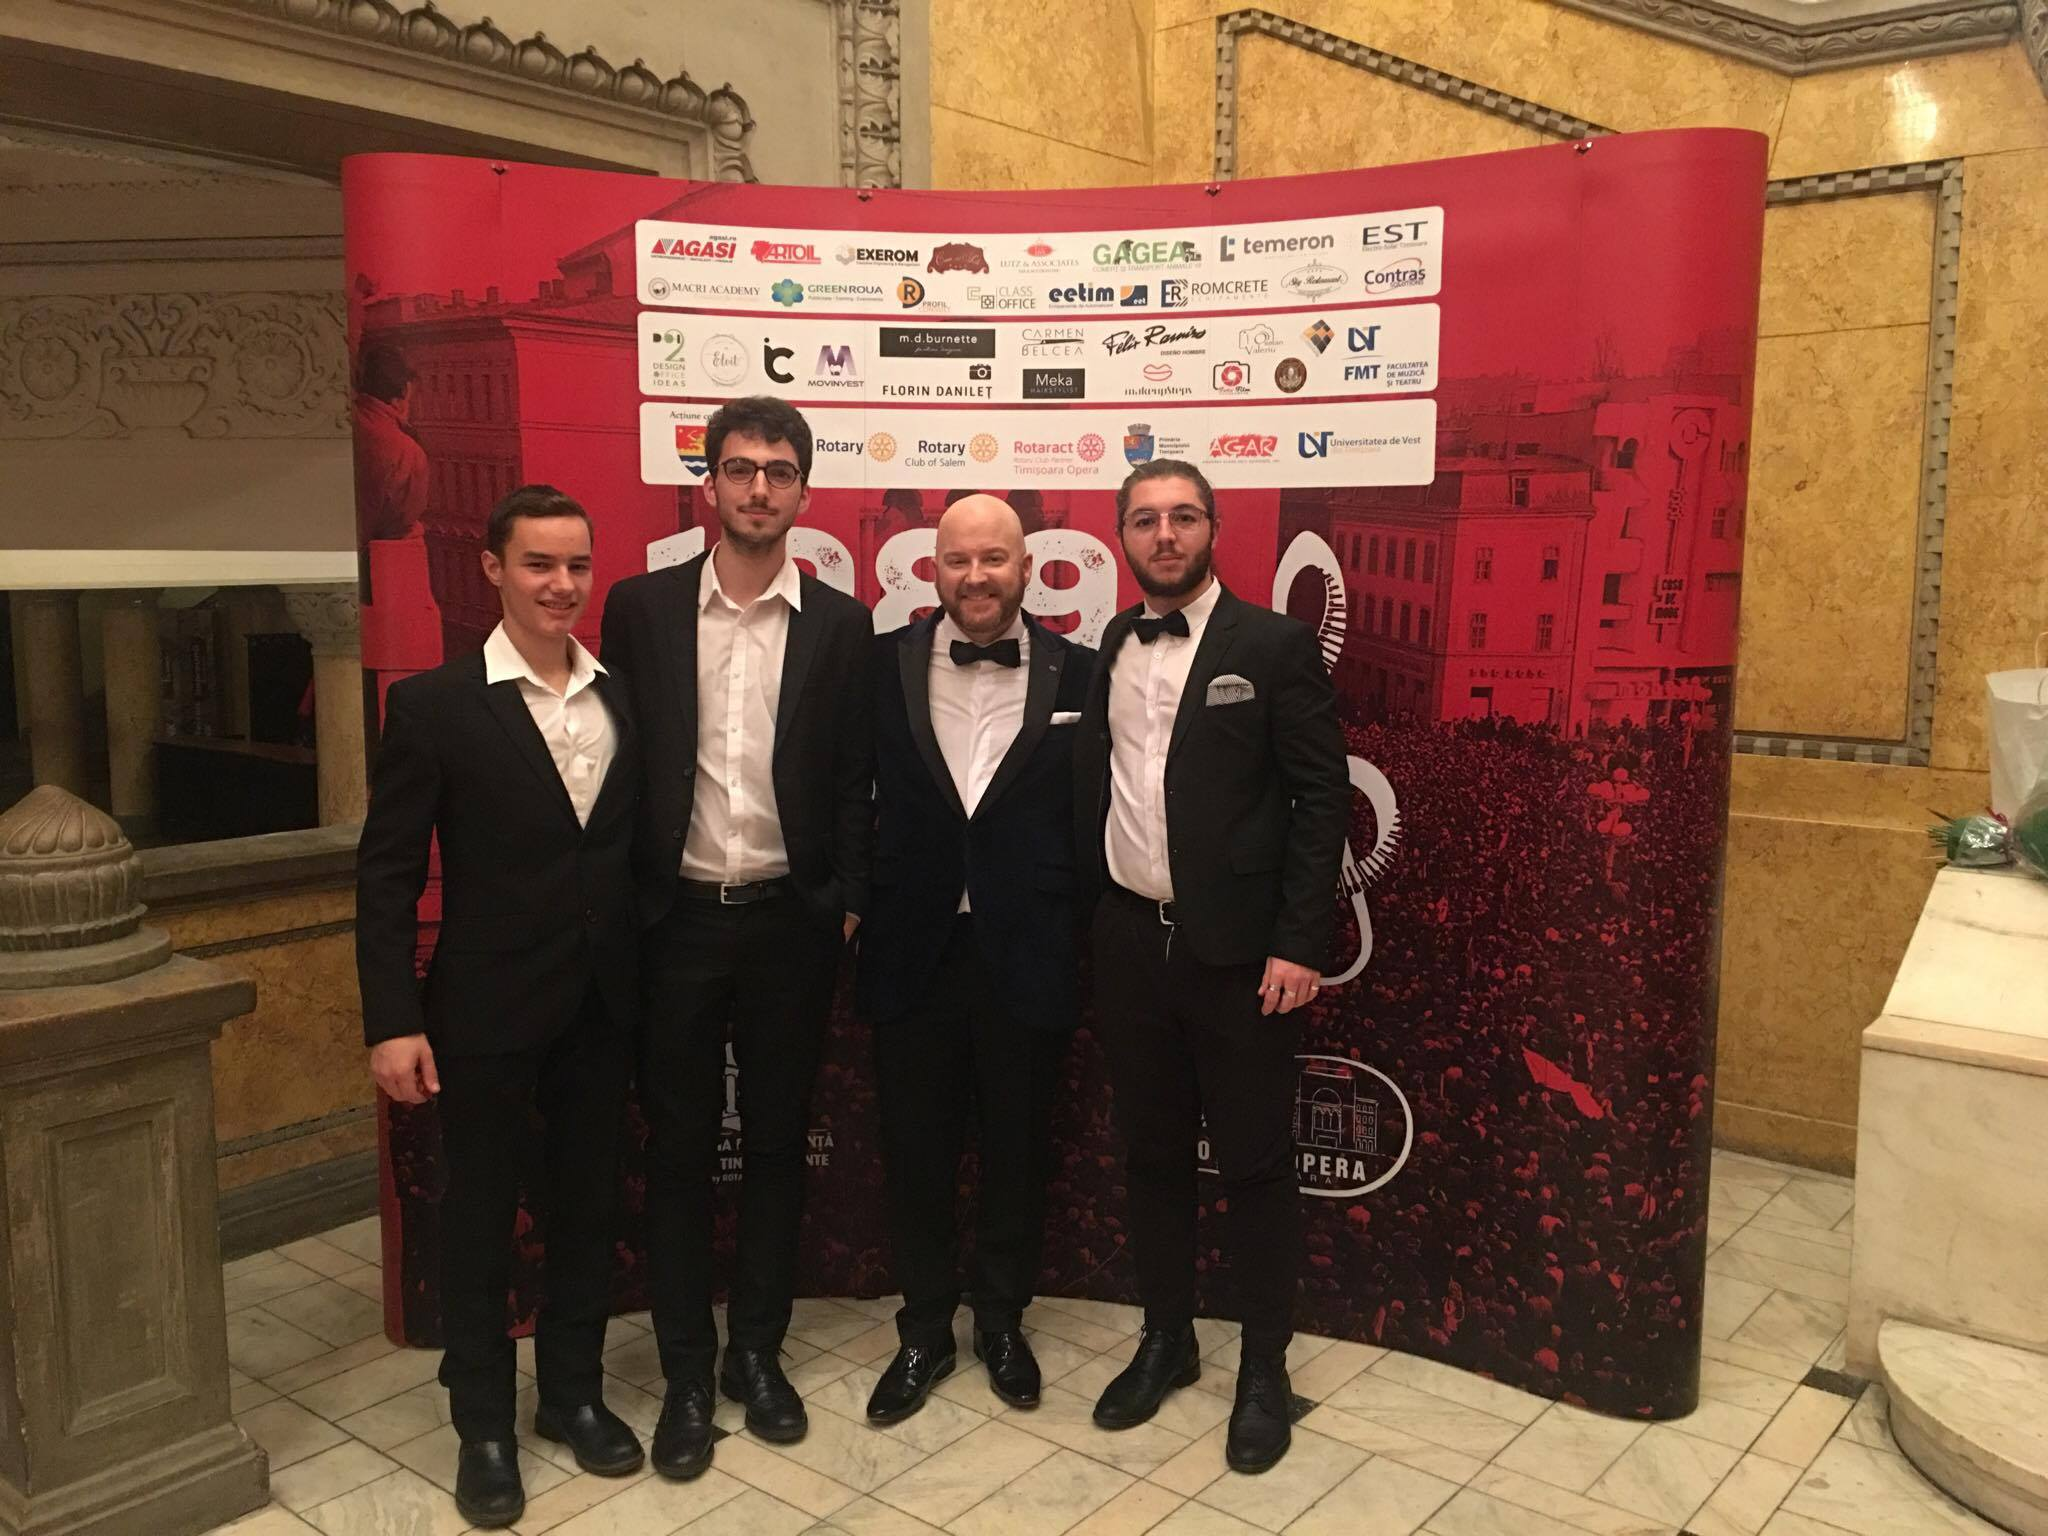 Tenors at Opera Romana Dec 2017